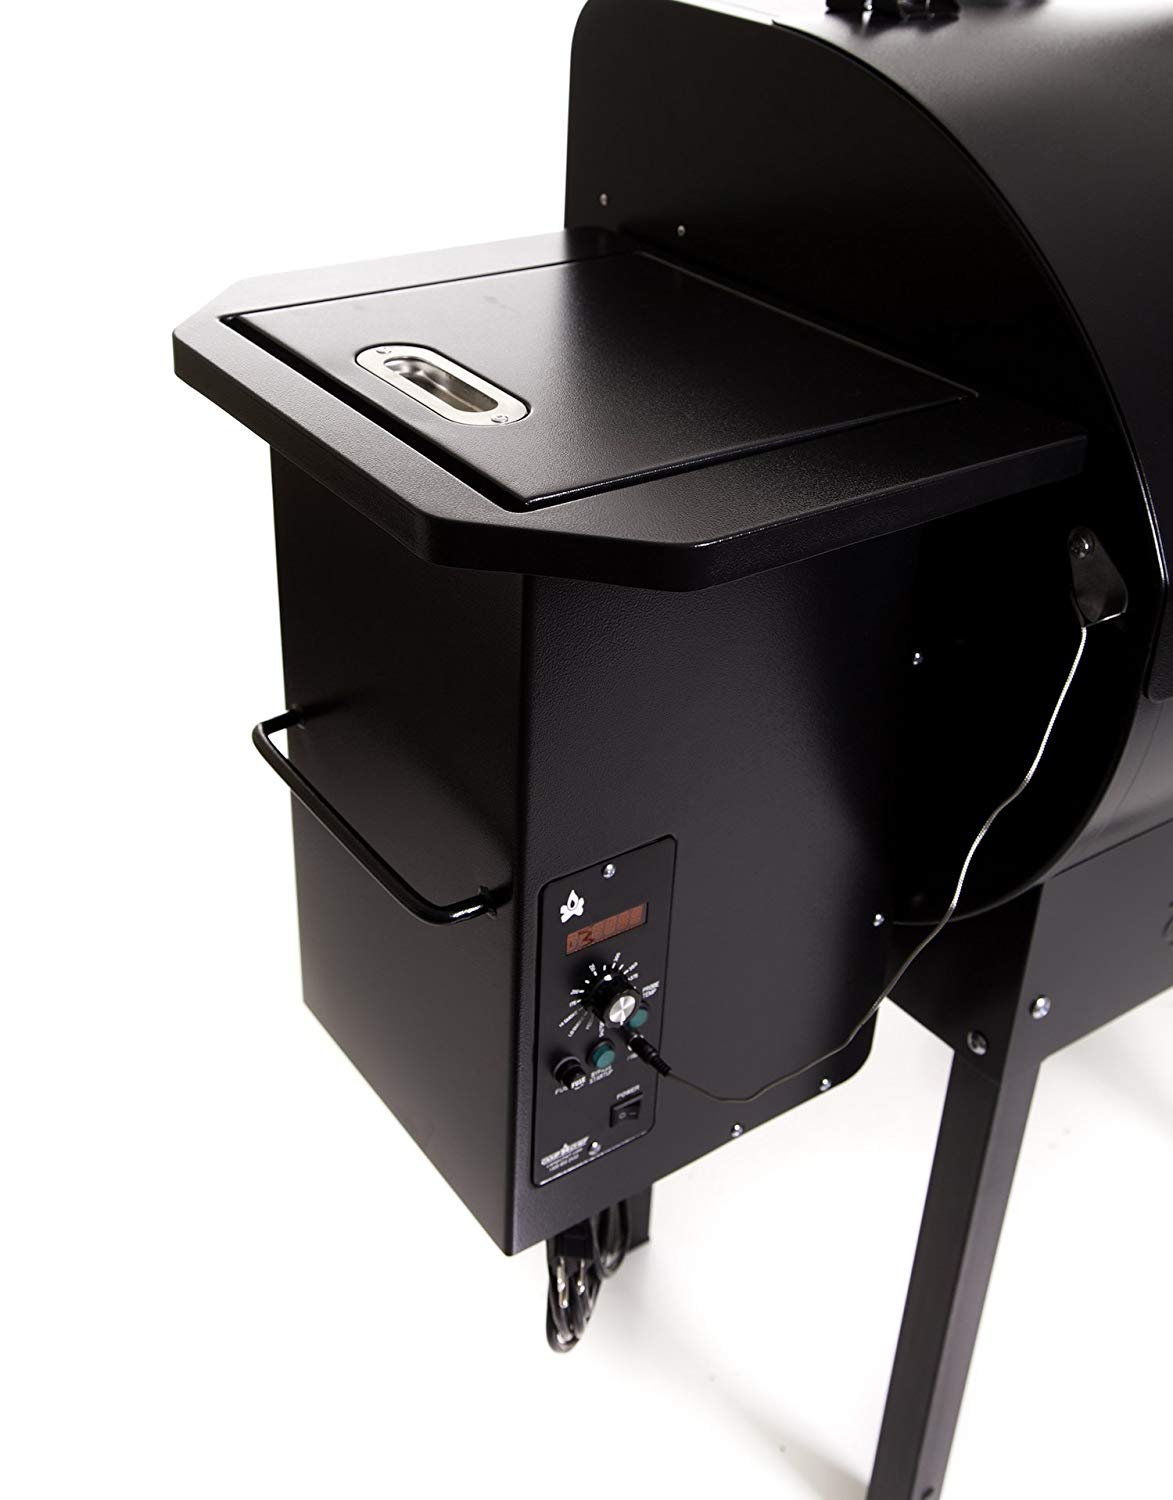 Camp chef smoker grills deluxe wood pellet grill